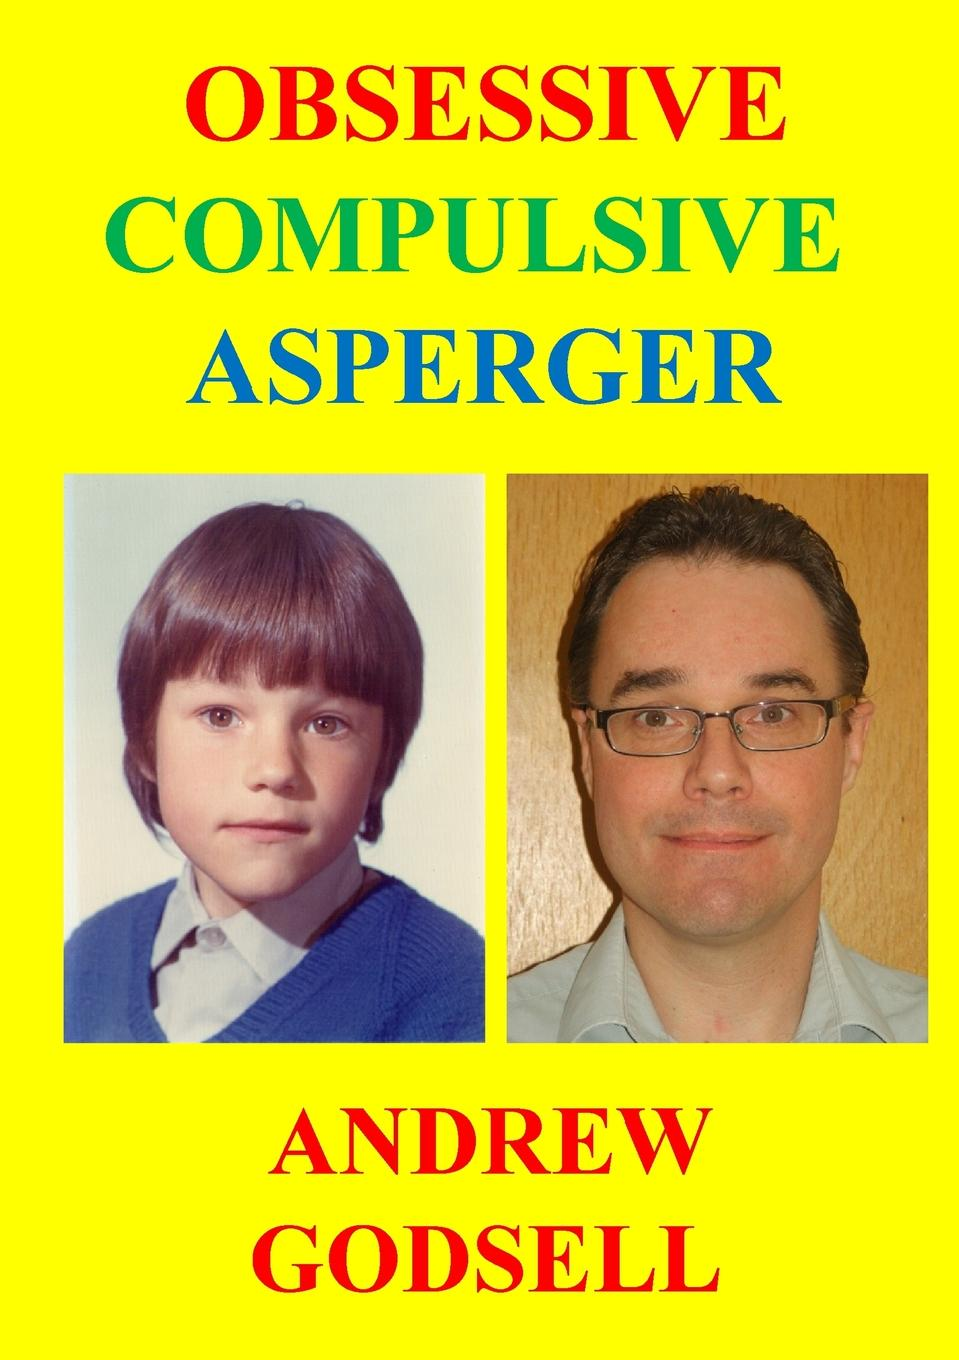 Andrew Godsell Obsessive Compulsive Asperger richard bromfield doing therapy with children and adolescents with asperger syndrome